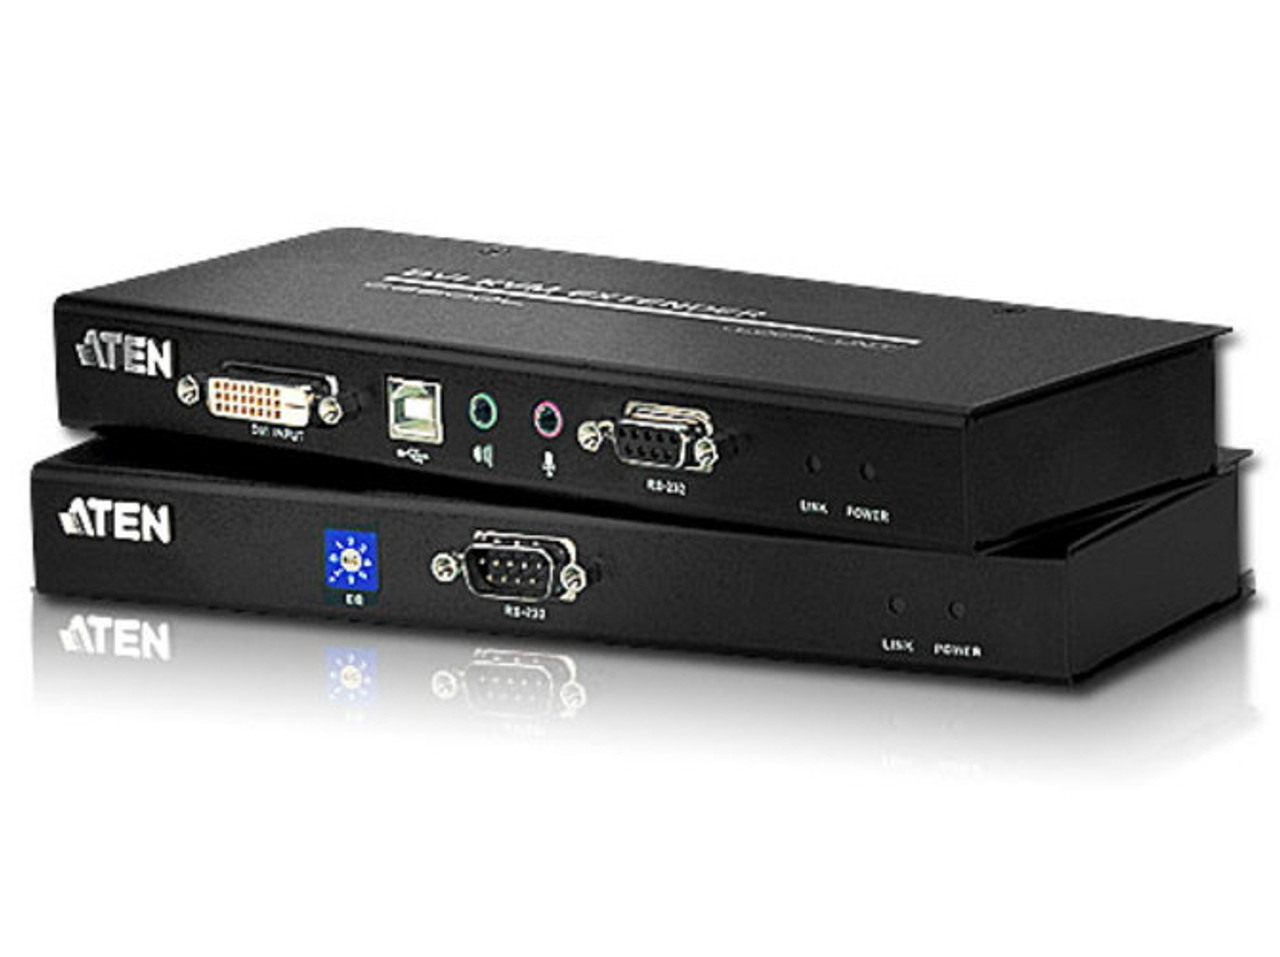 Image for ATEN CE602 USB DVI Dual Link Cat5 KVM Extender with Audio - 1024x768 at 60m CX Computer Superstore